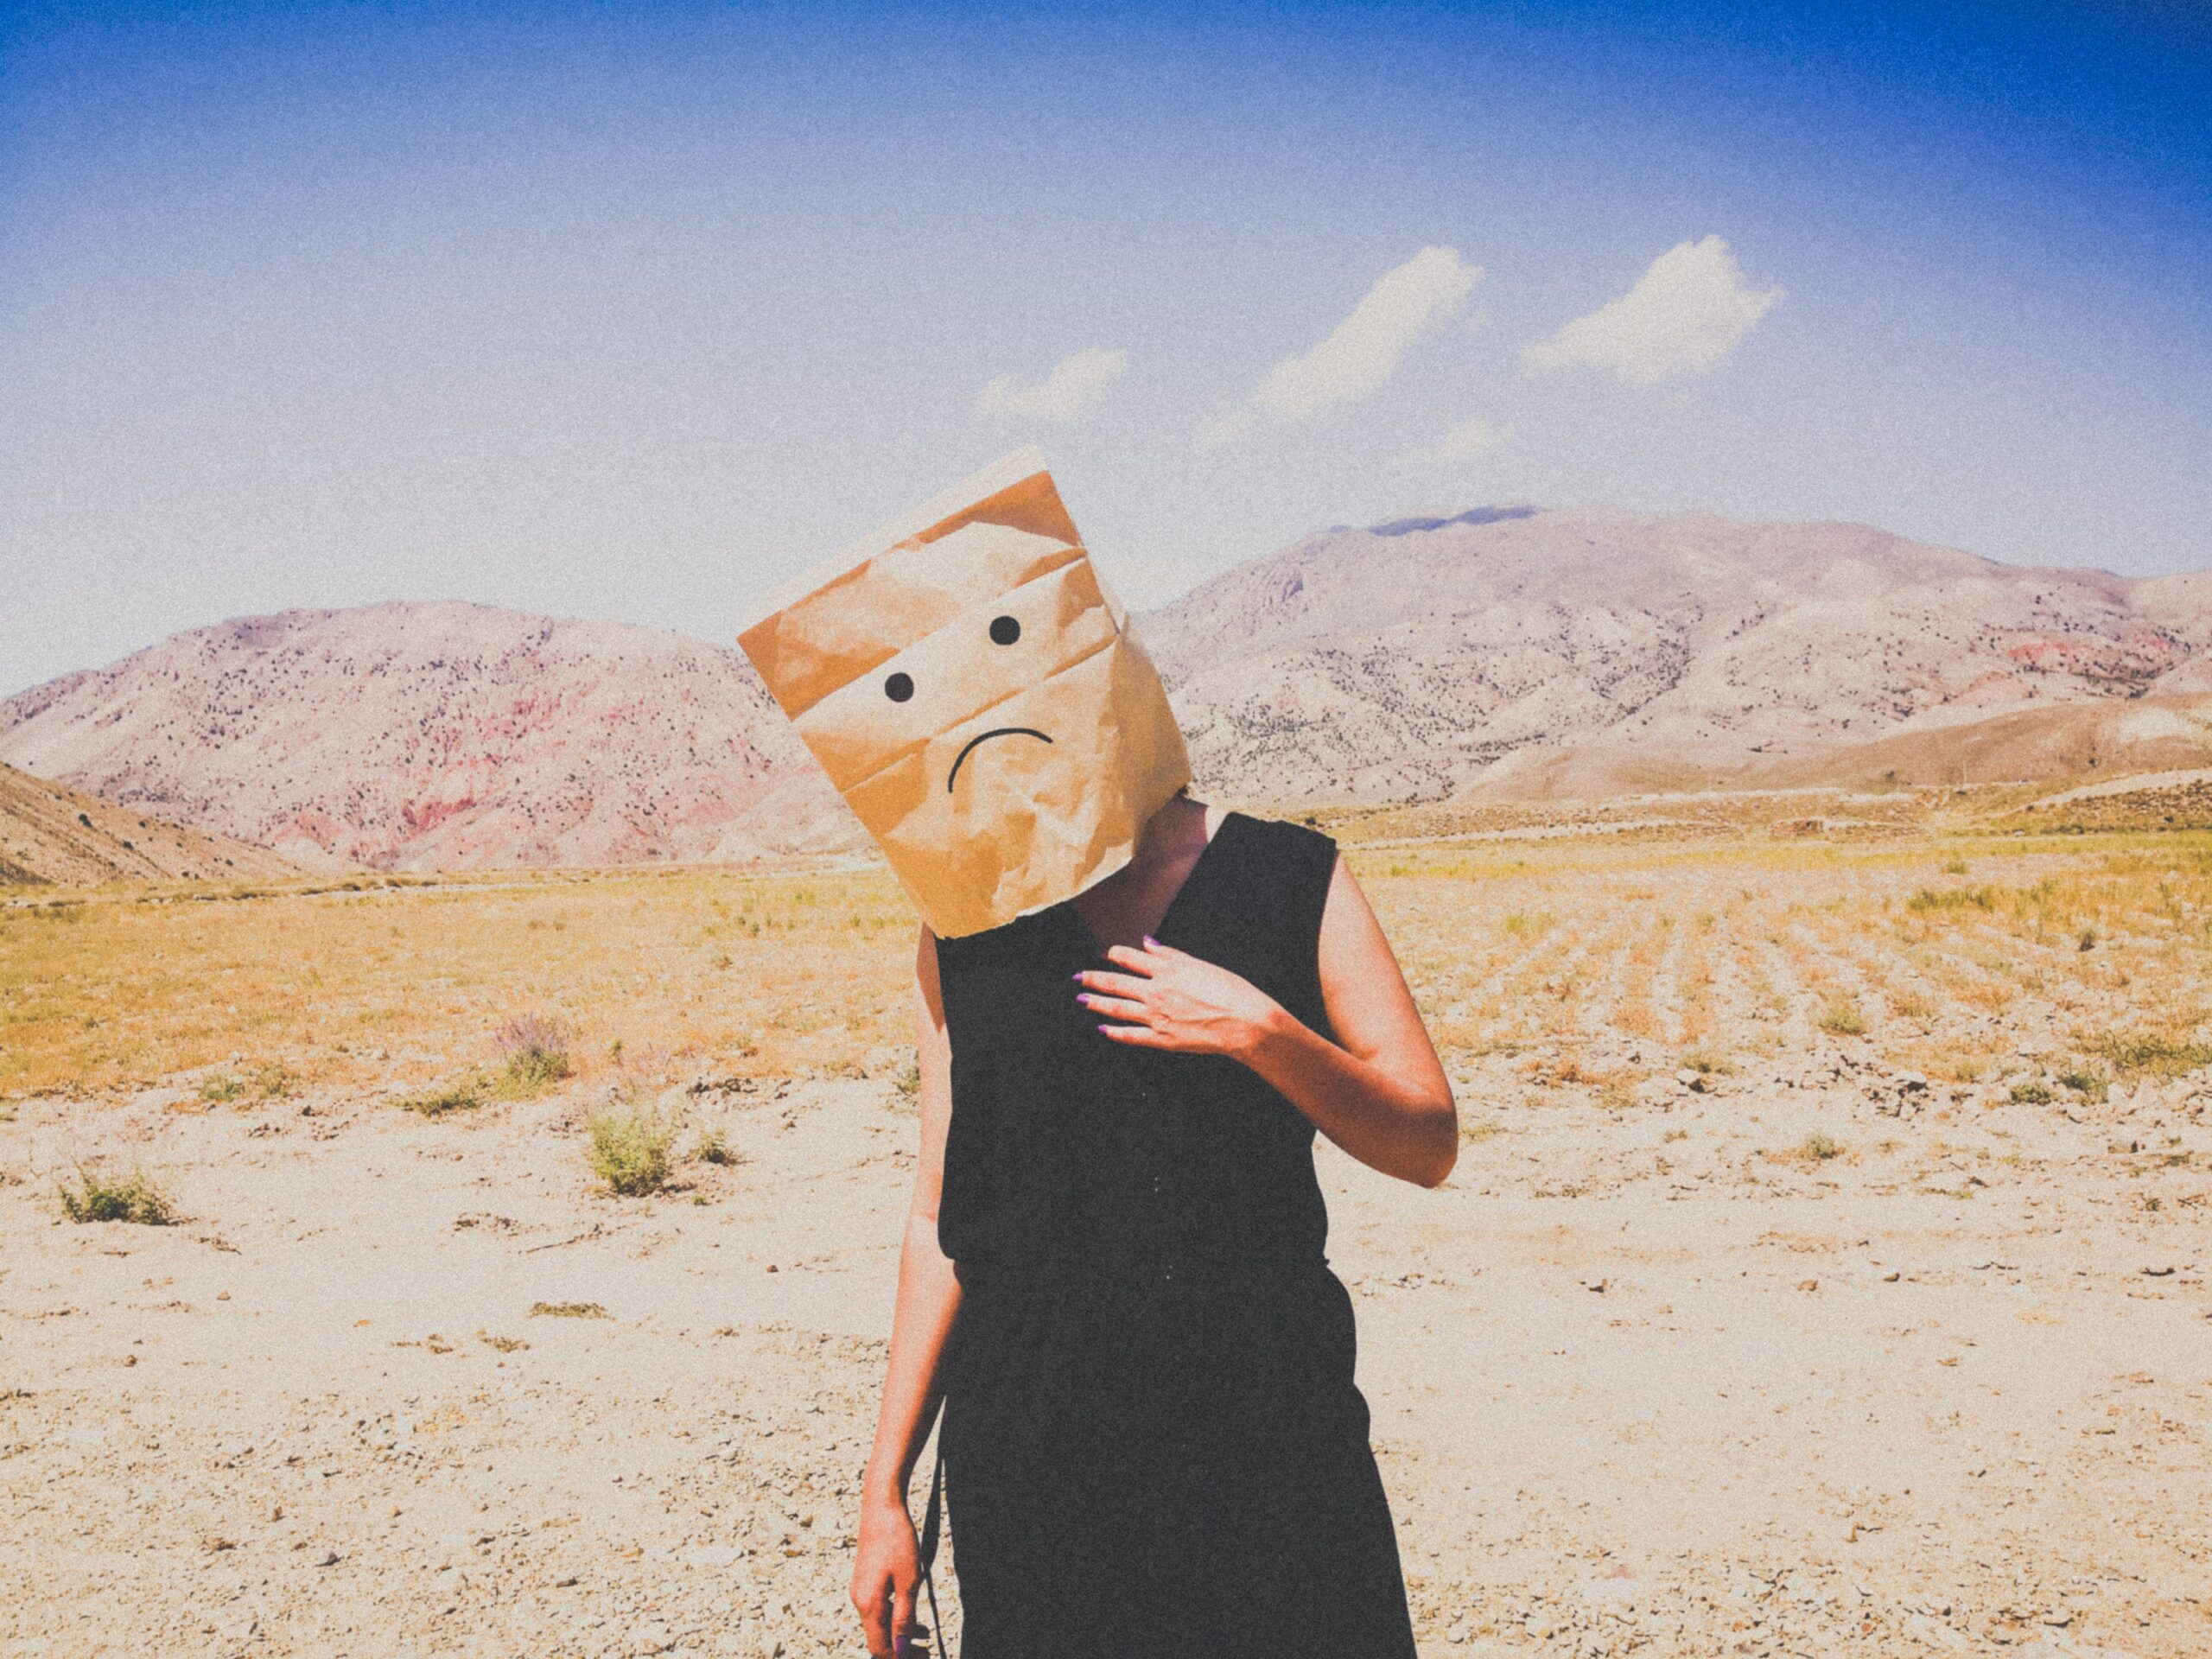 A man with bag and a sad face on his head in the desert.